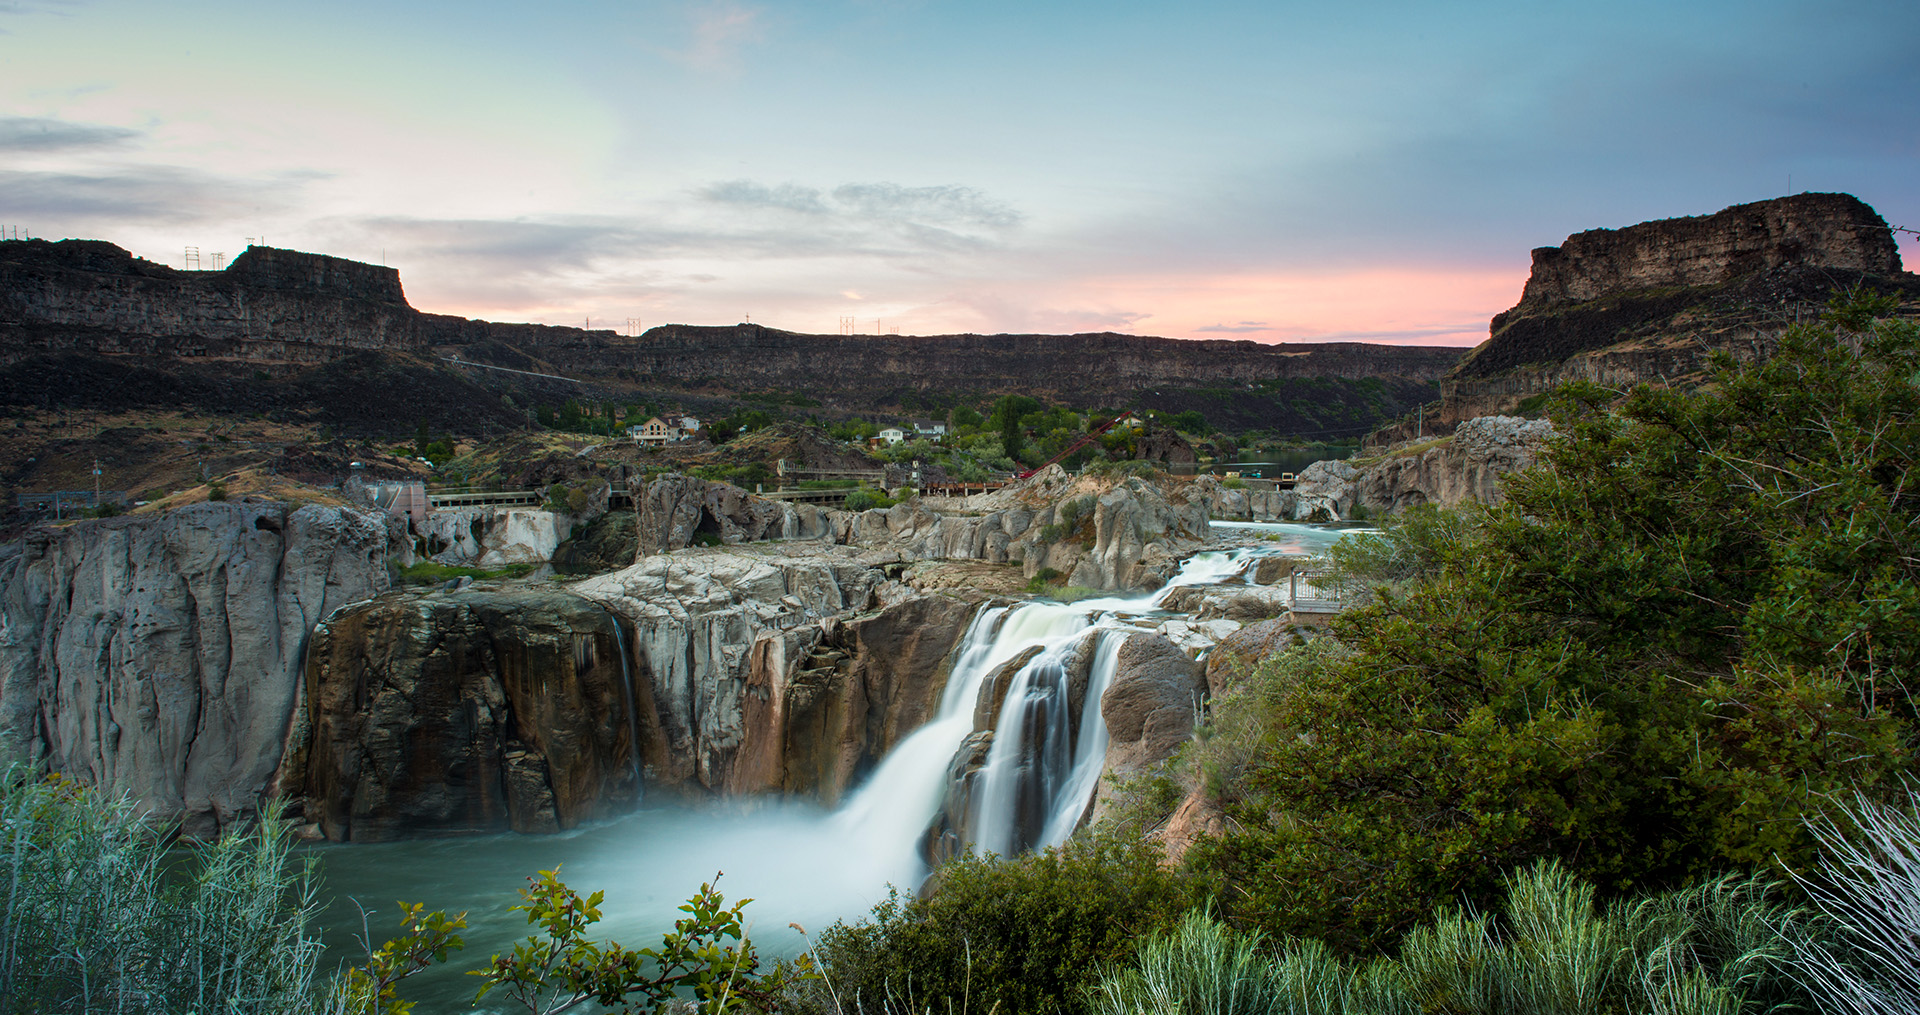 shoshone falls at sunrise